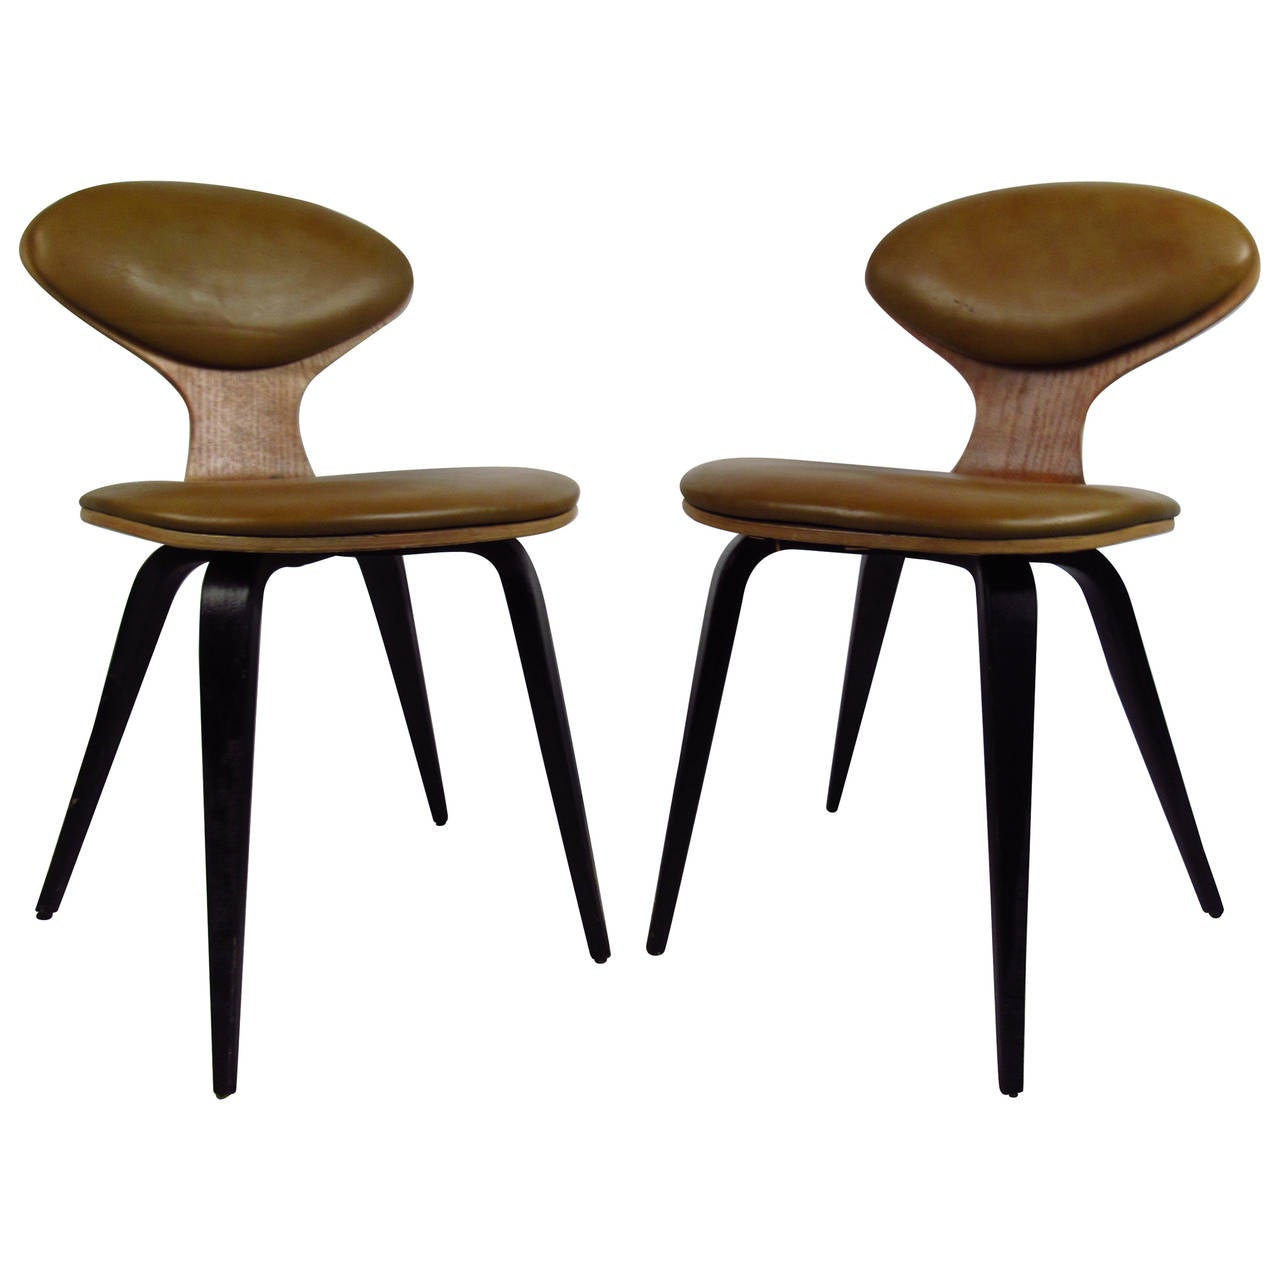 Pair of Mid-Century Modern Bentwood Chairs in the Style of Norman Cherner For Sale